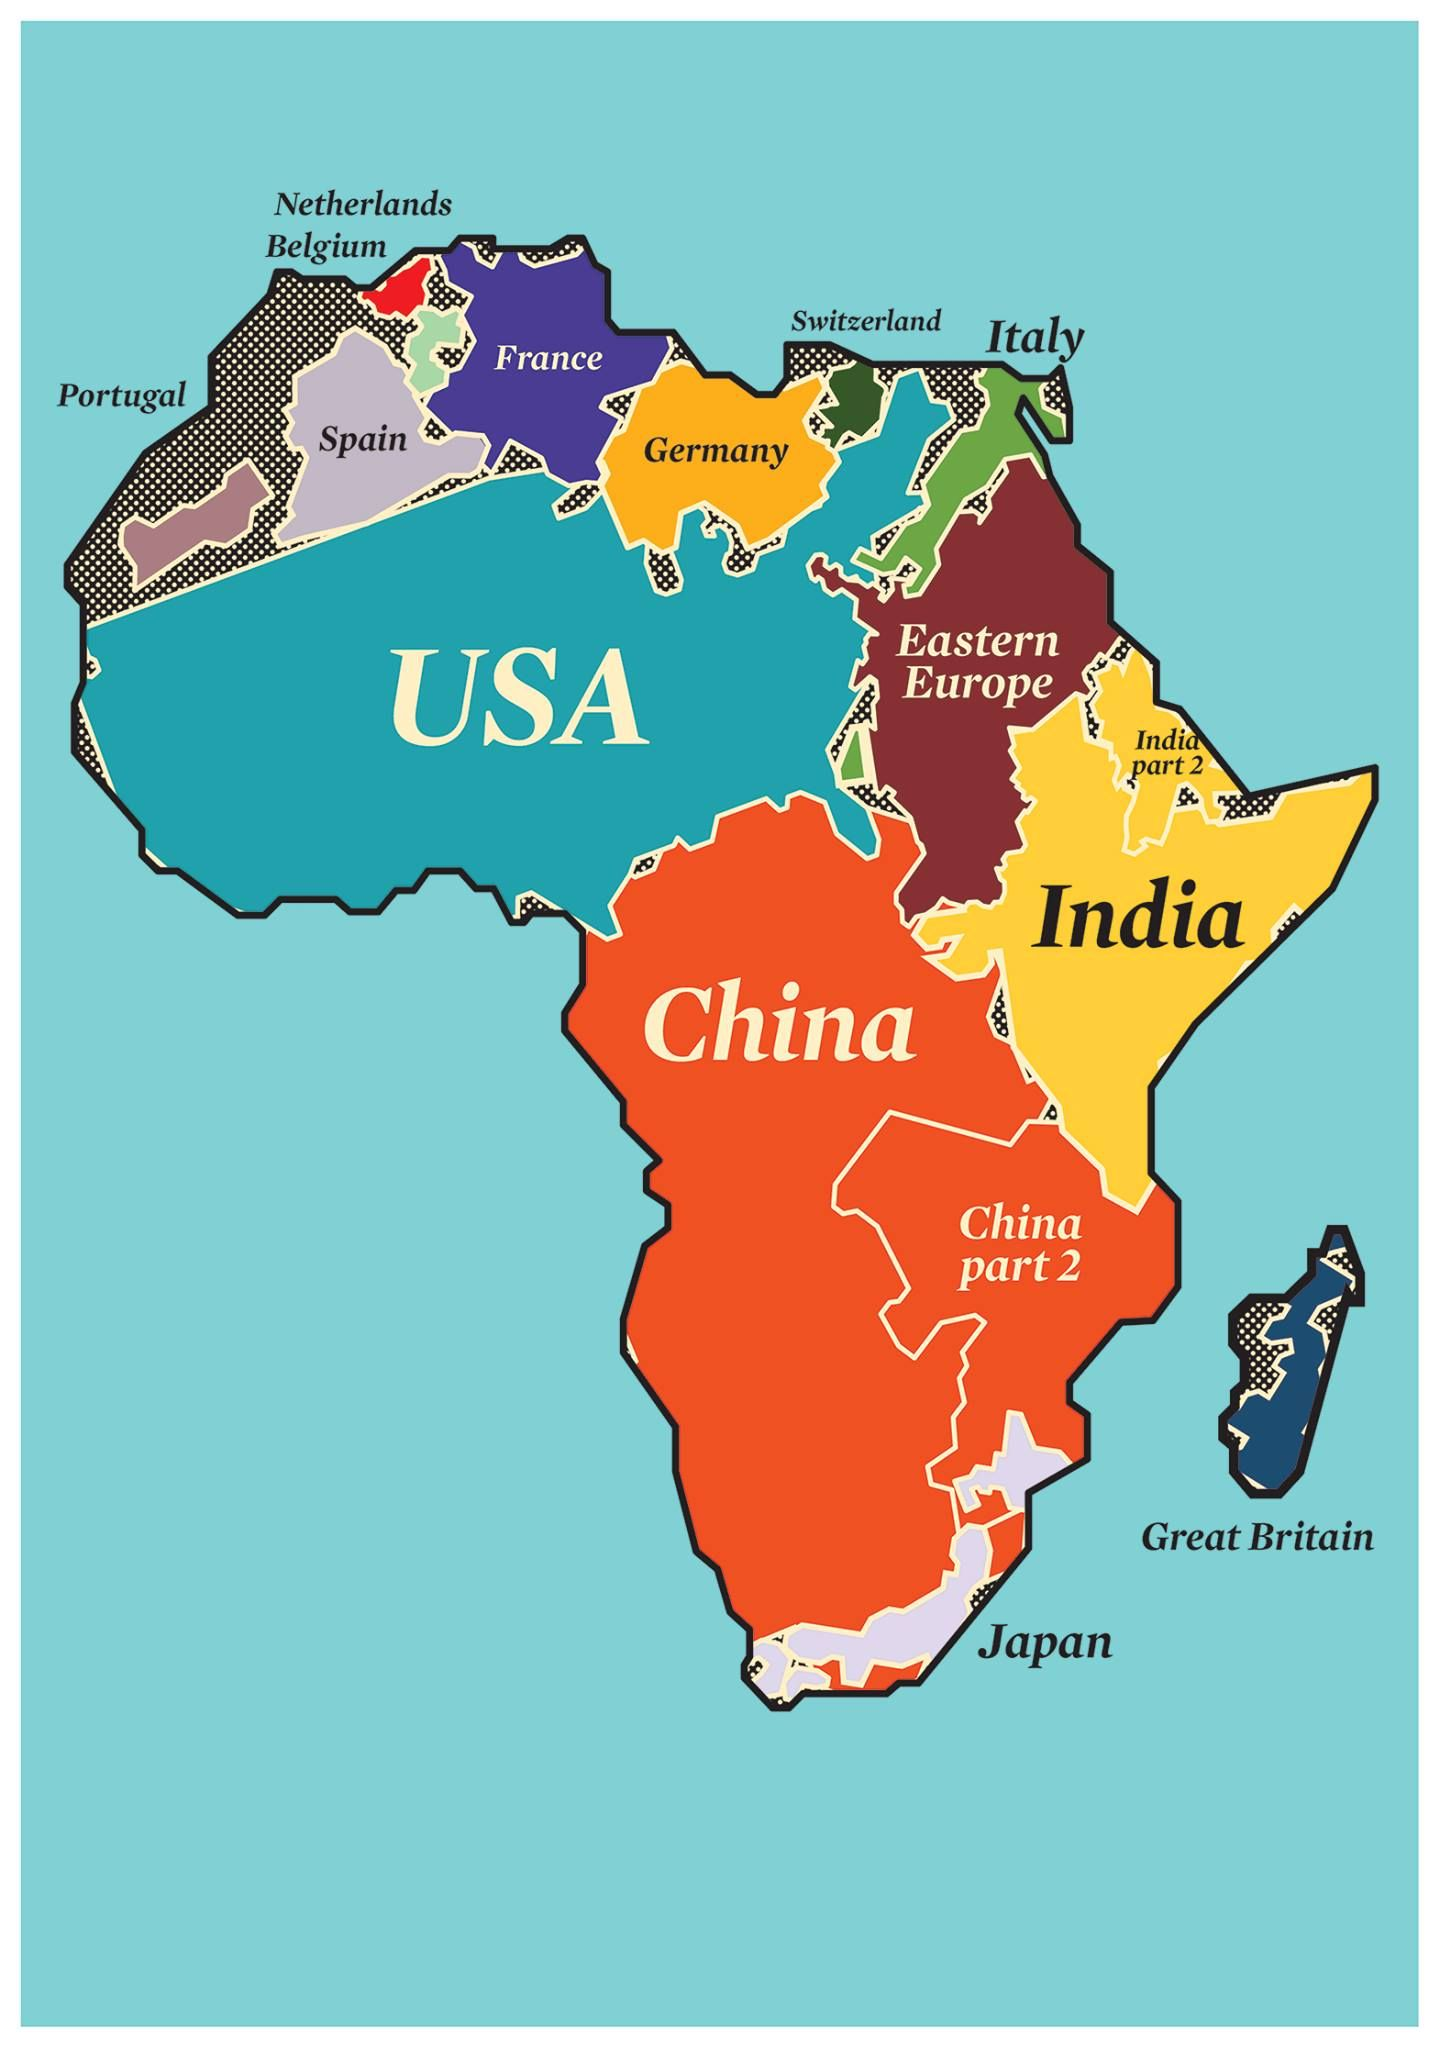 Real size of Africa compared to other countries | Africa map ...